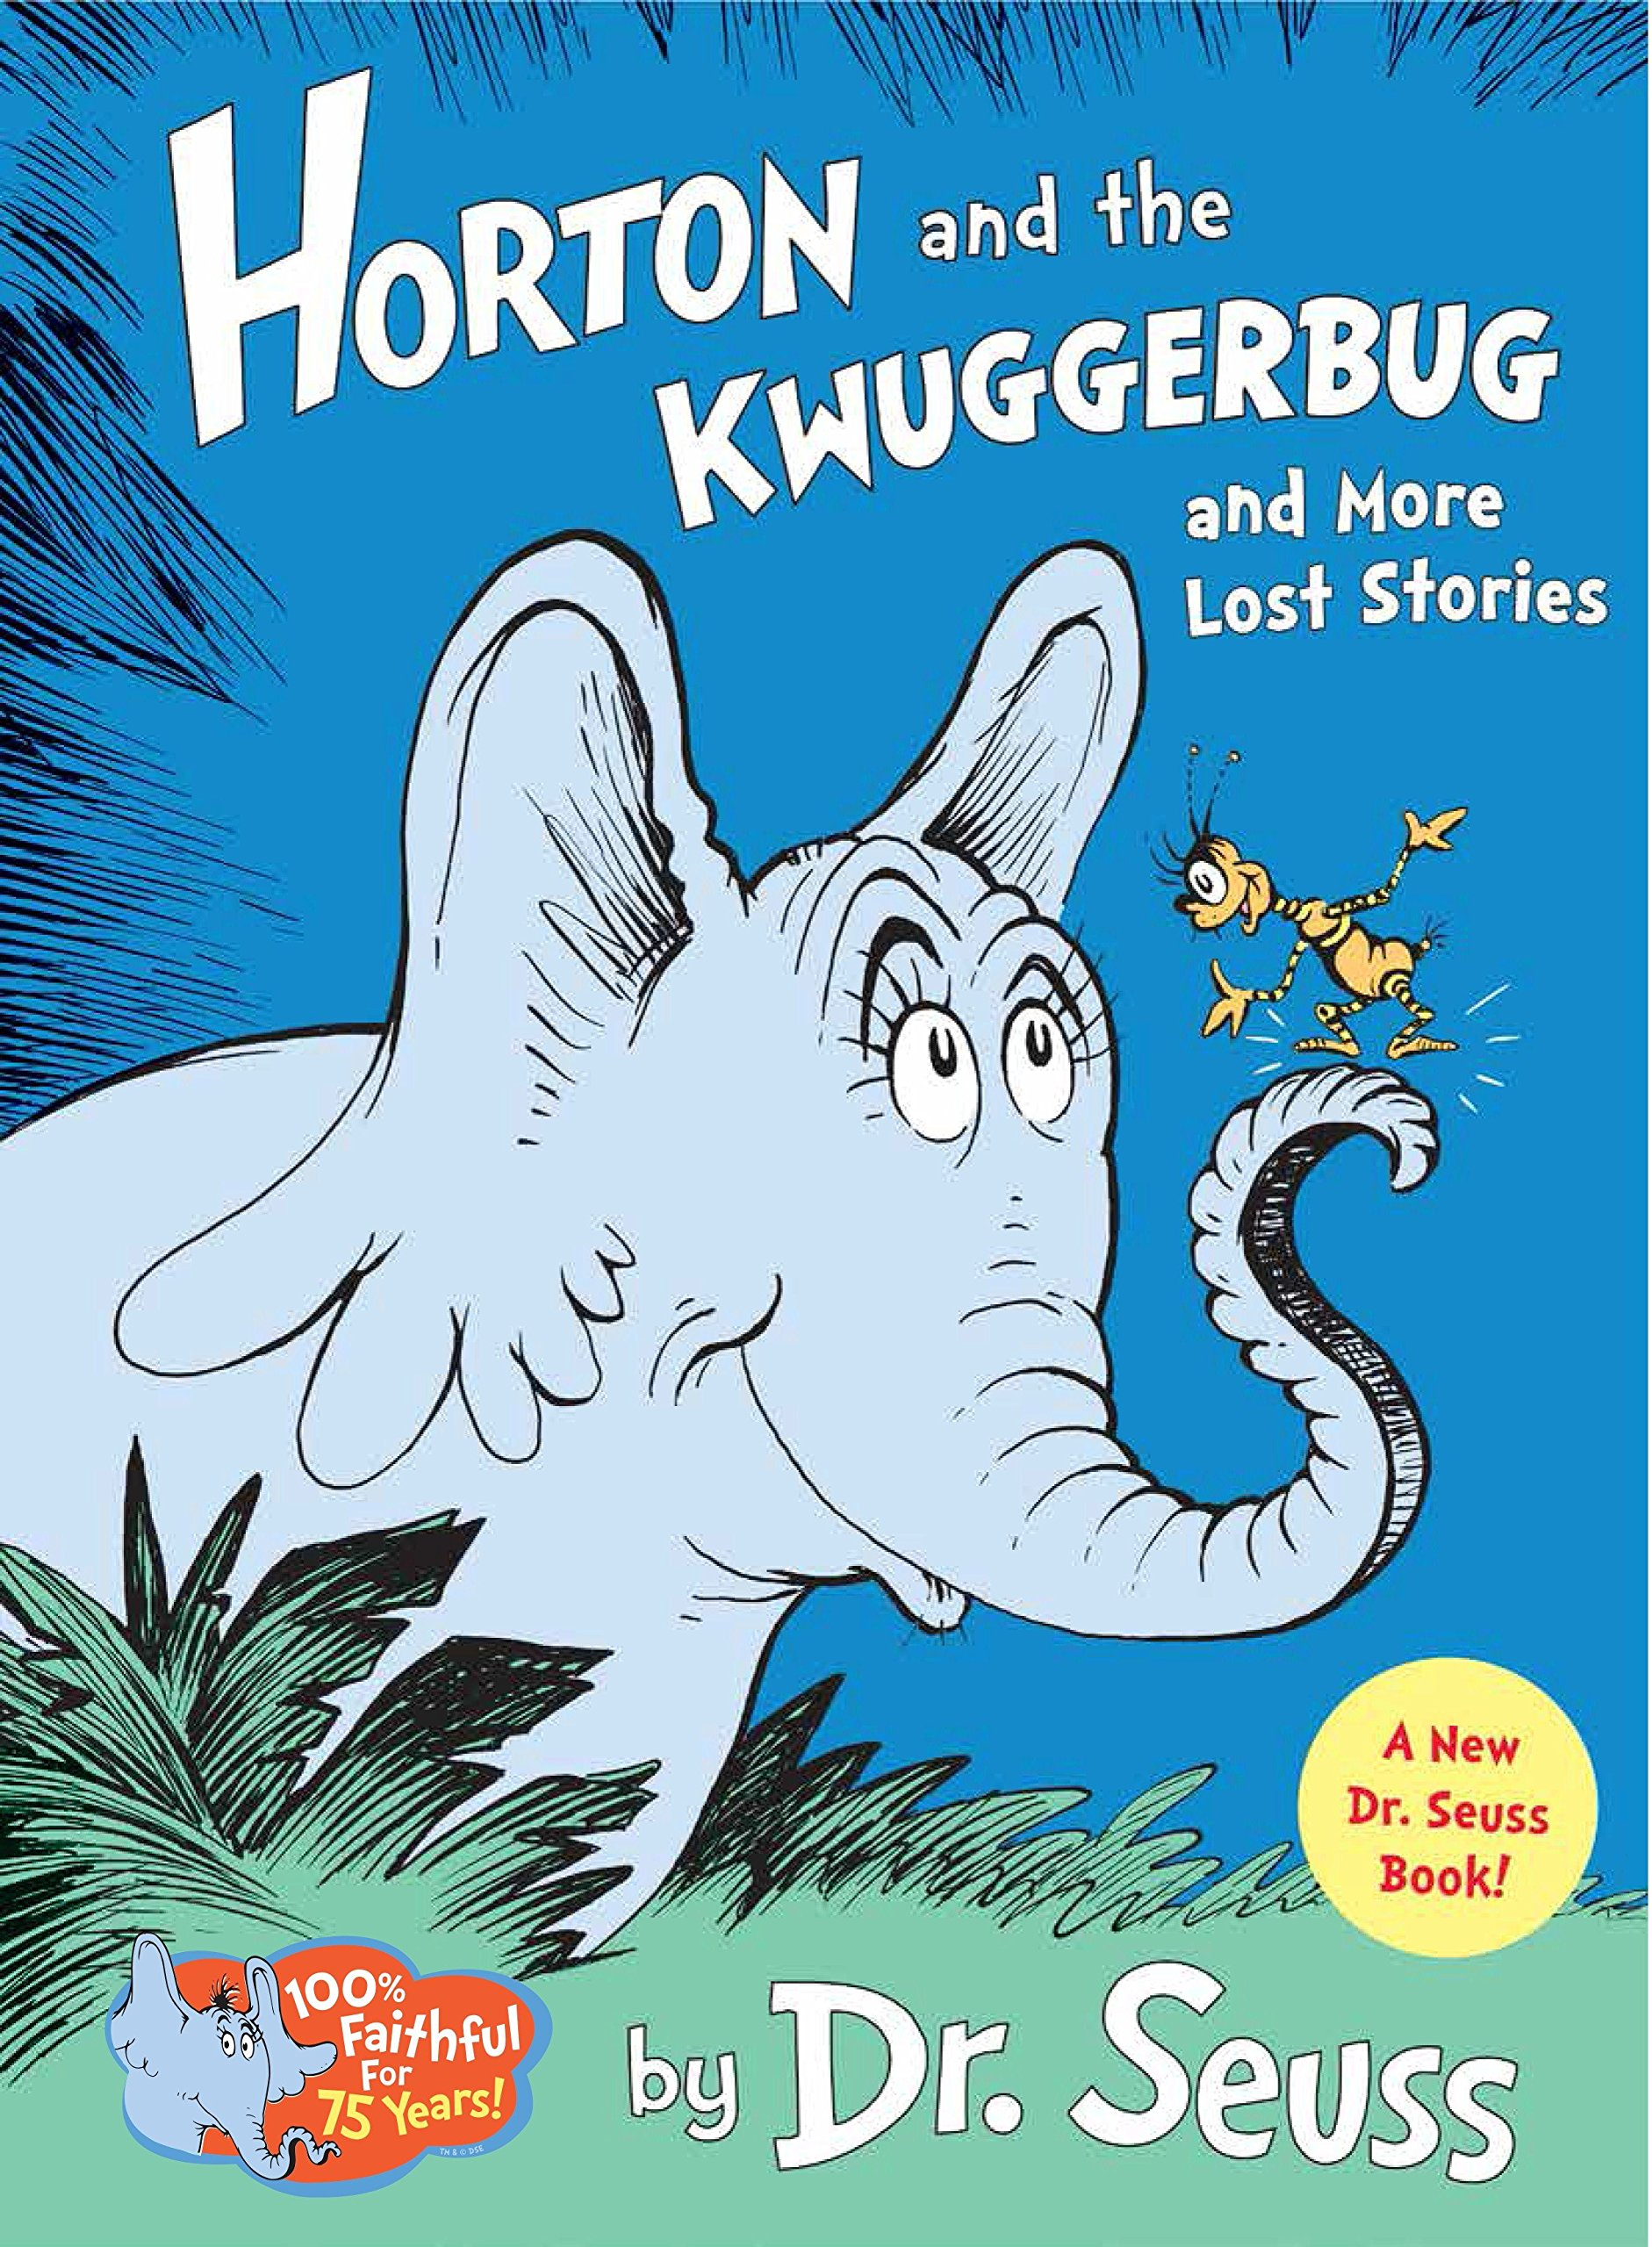 Horton and the Kwuggerbug and more Lost Stories (Classic Seuss) by Random House Books for Young Readers (Image #1)